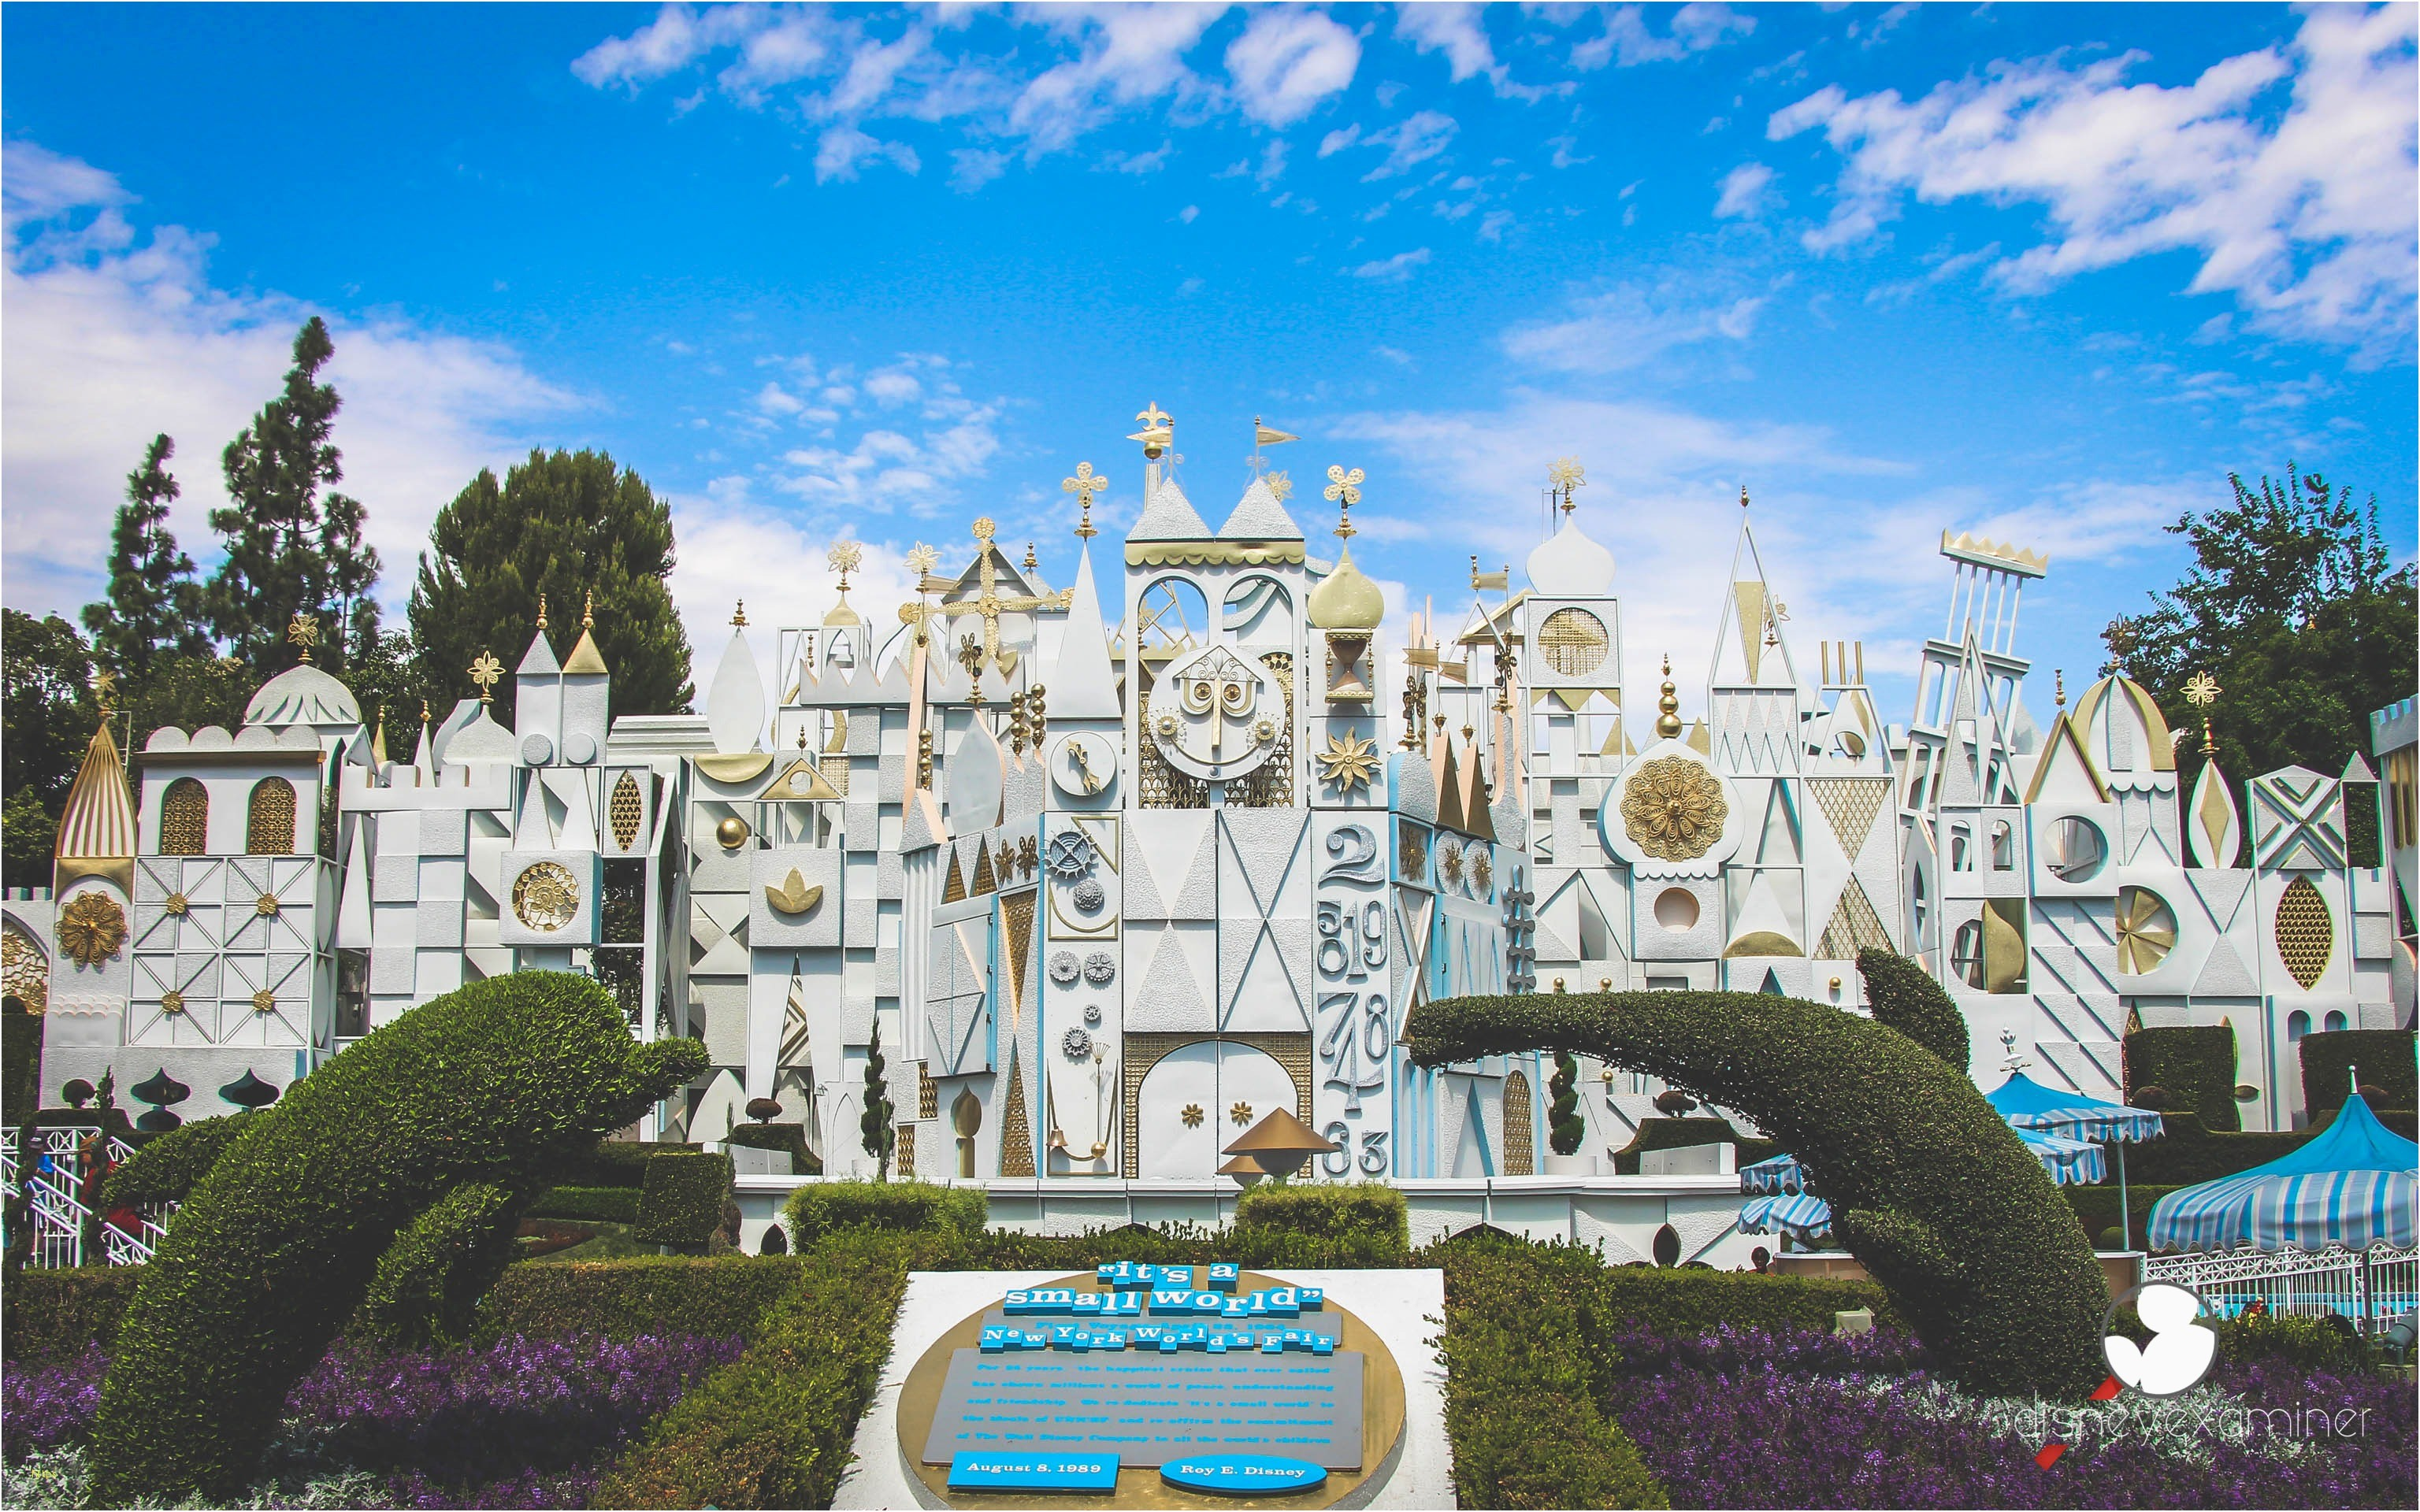 3072x1920 Disneyland Wallpaper Best Of Disneyexaminer Disneyland Winter Wallpapers  Its A Small